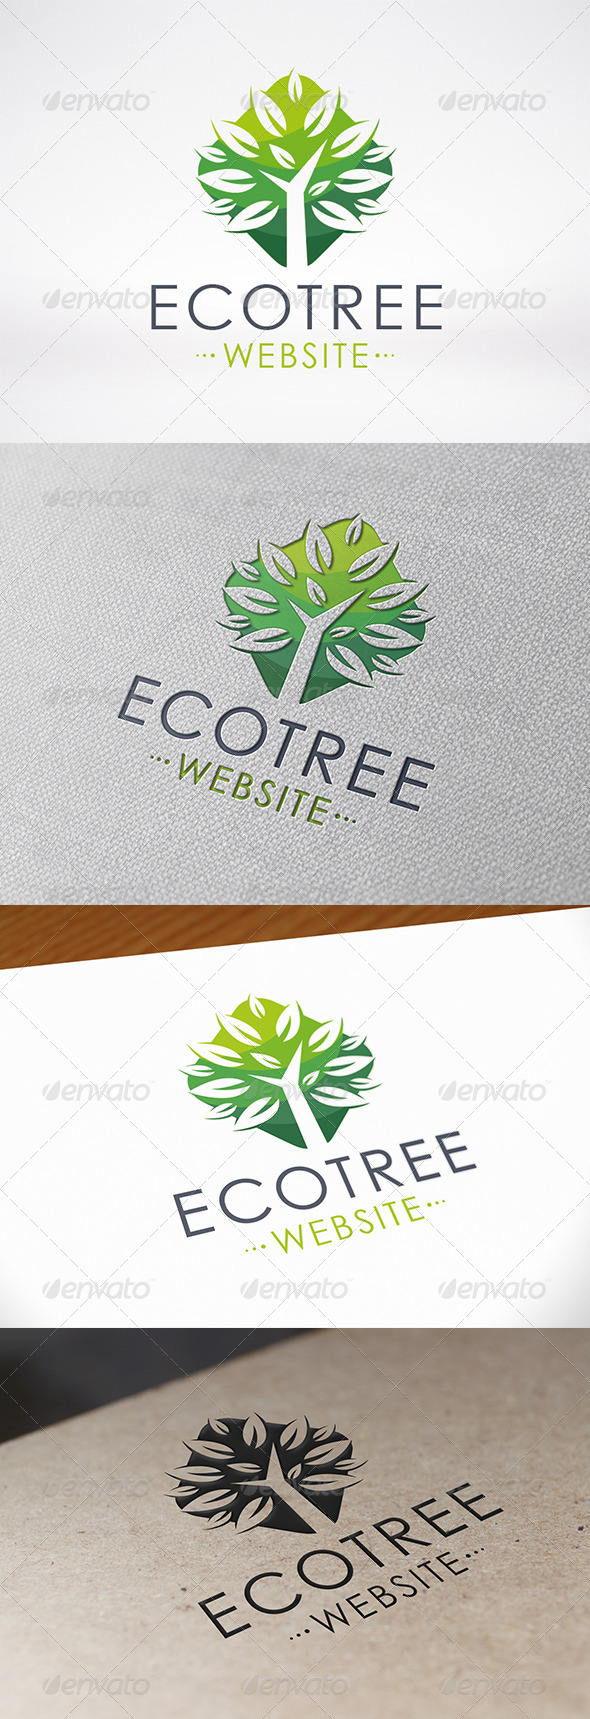 oak tree logo template by bosstwinsmusic graphicriver